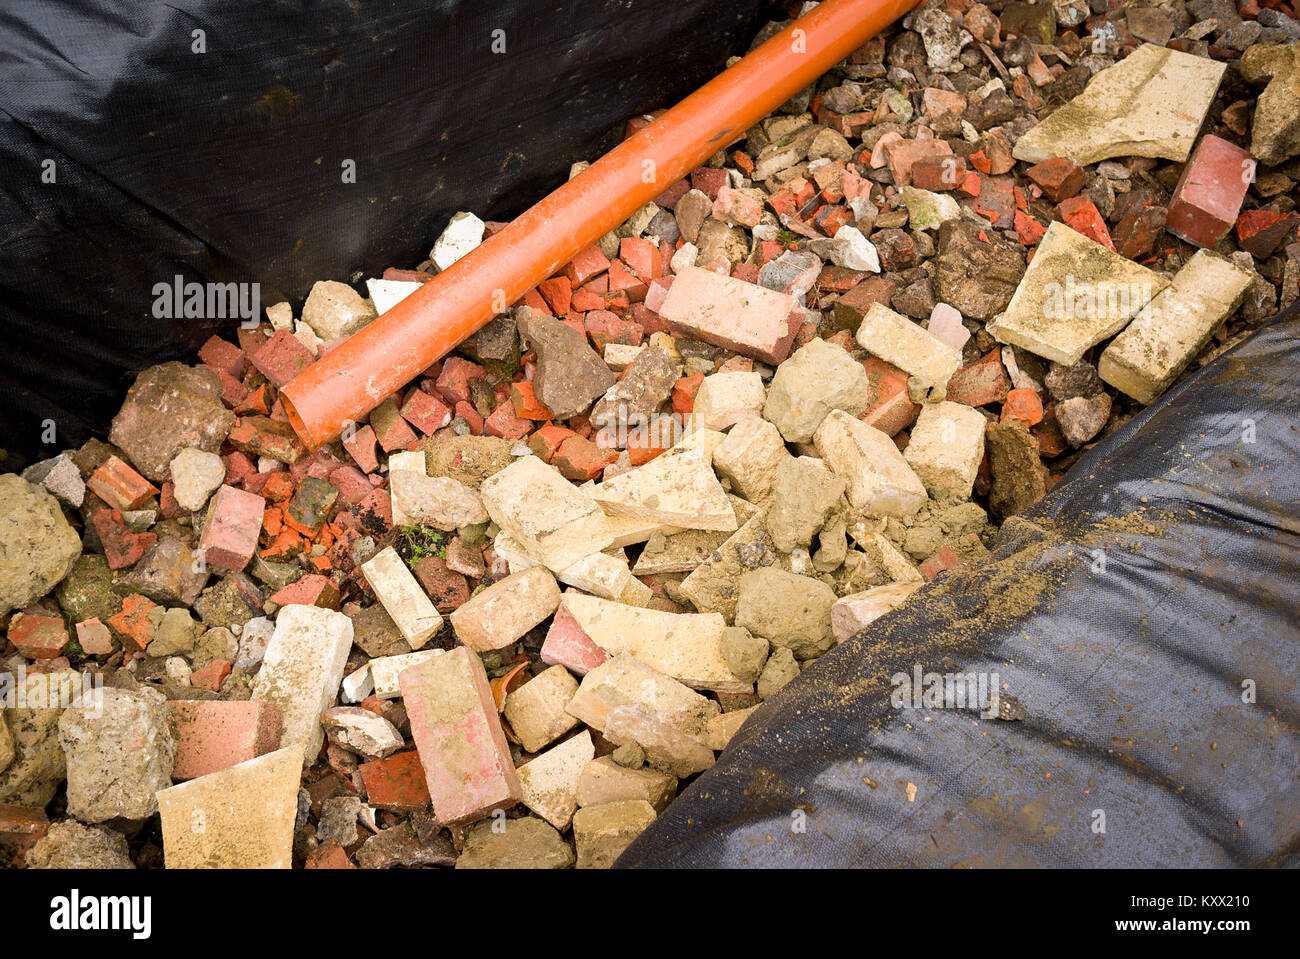 A newly dug pit filled with brick and stone rubble to form a rainwater soakawy from building foundations in UK Stock Photo